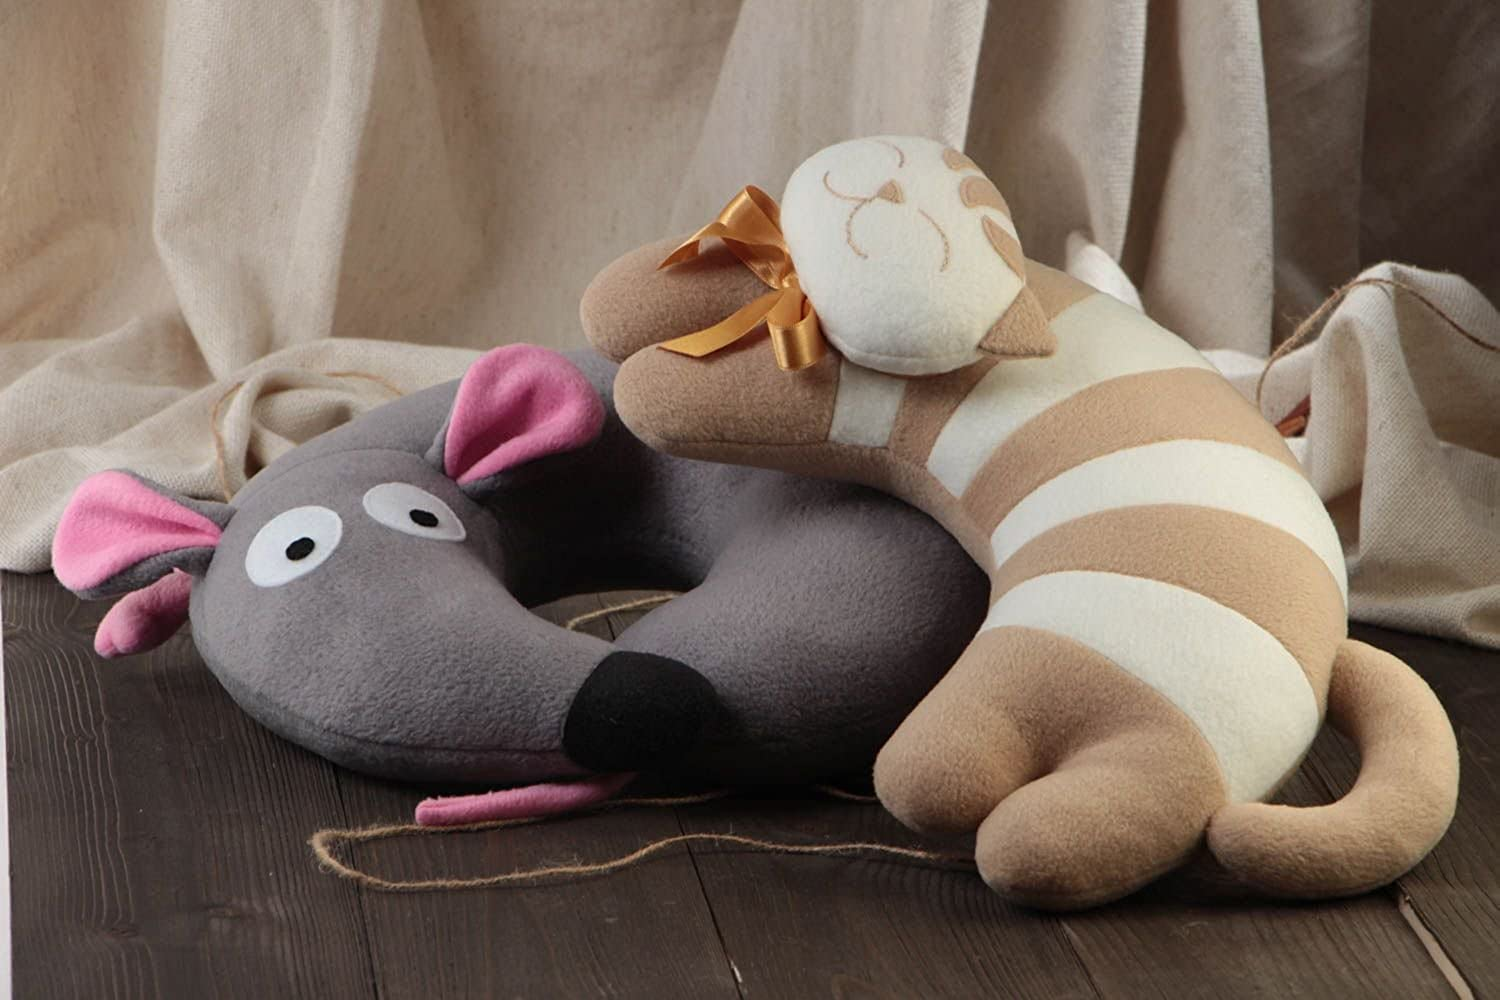 Set Of Handmade Soft Travel Pillows 2 Pieces Mouse And Cat Pillow Pets